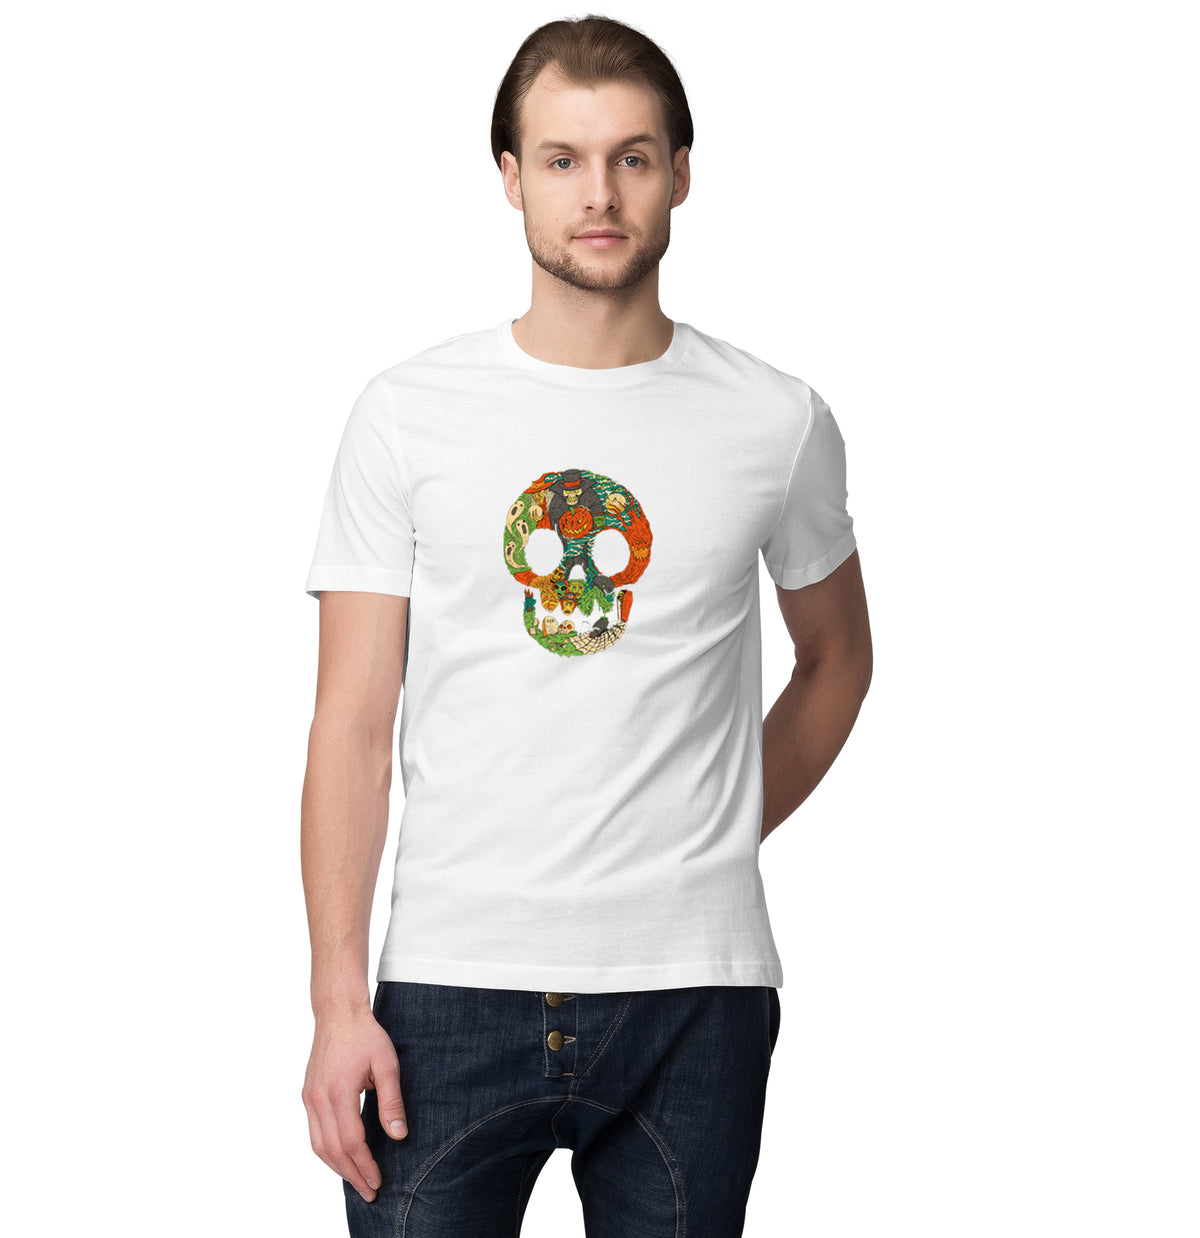 Halloween Special Mens Round Neck Half Sleeve T-Shirt - Pockets Moda Customise Hoodies and Tshirt